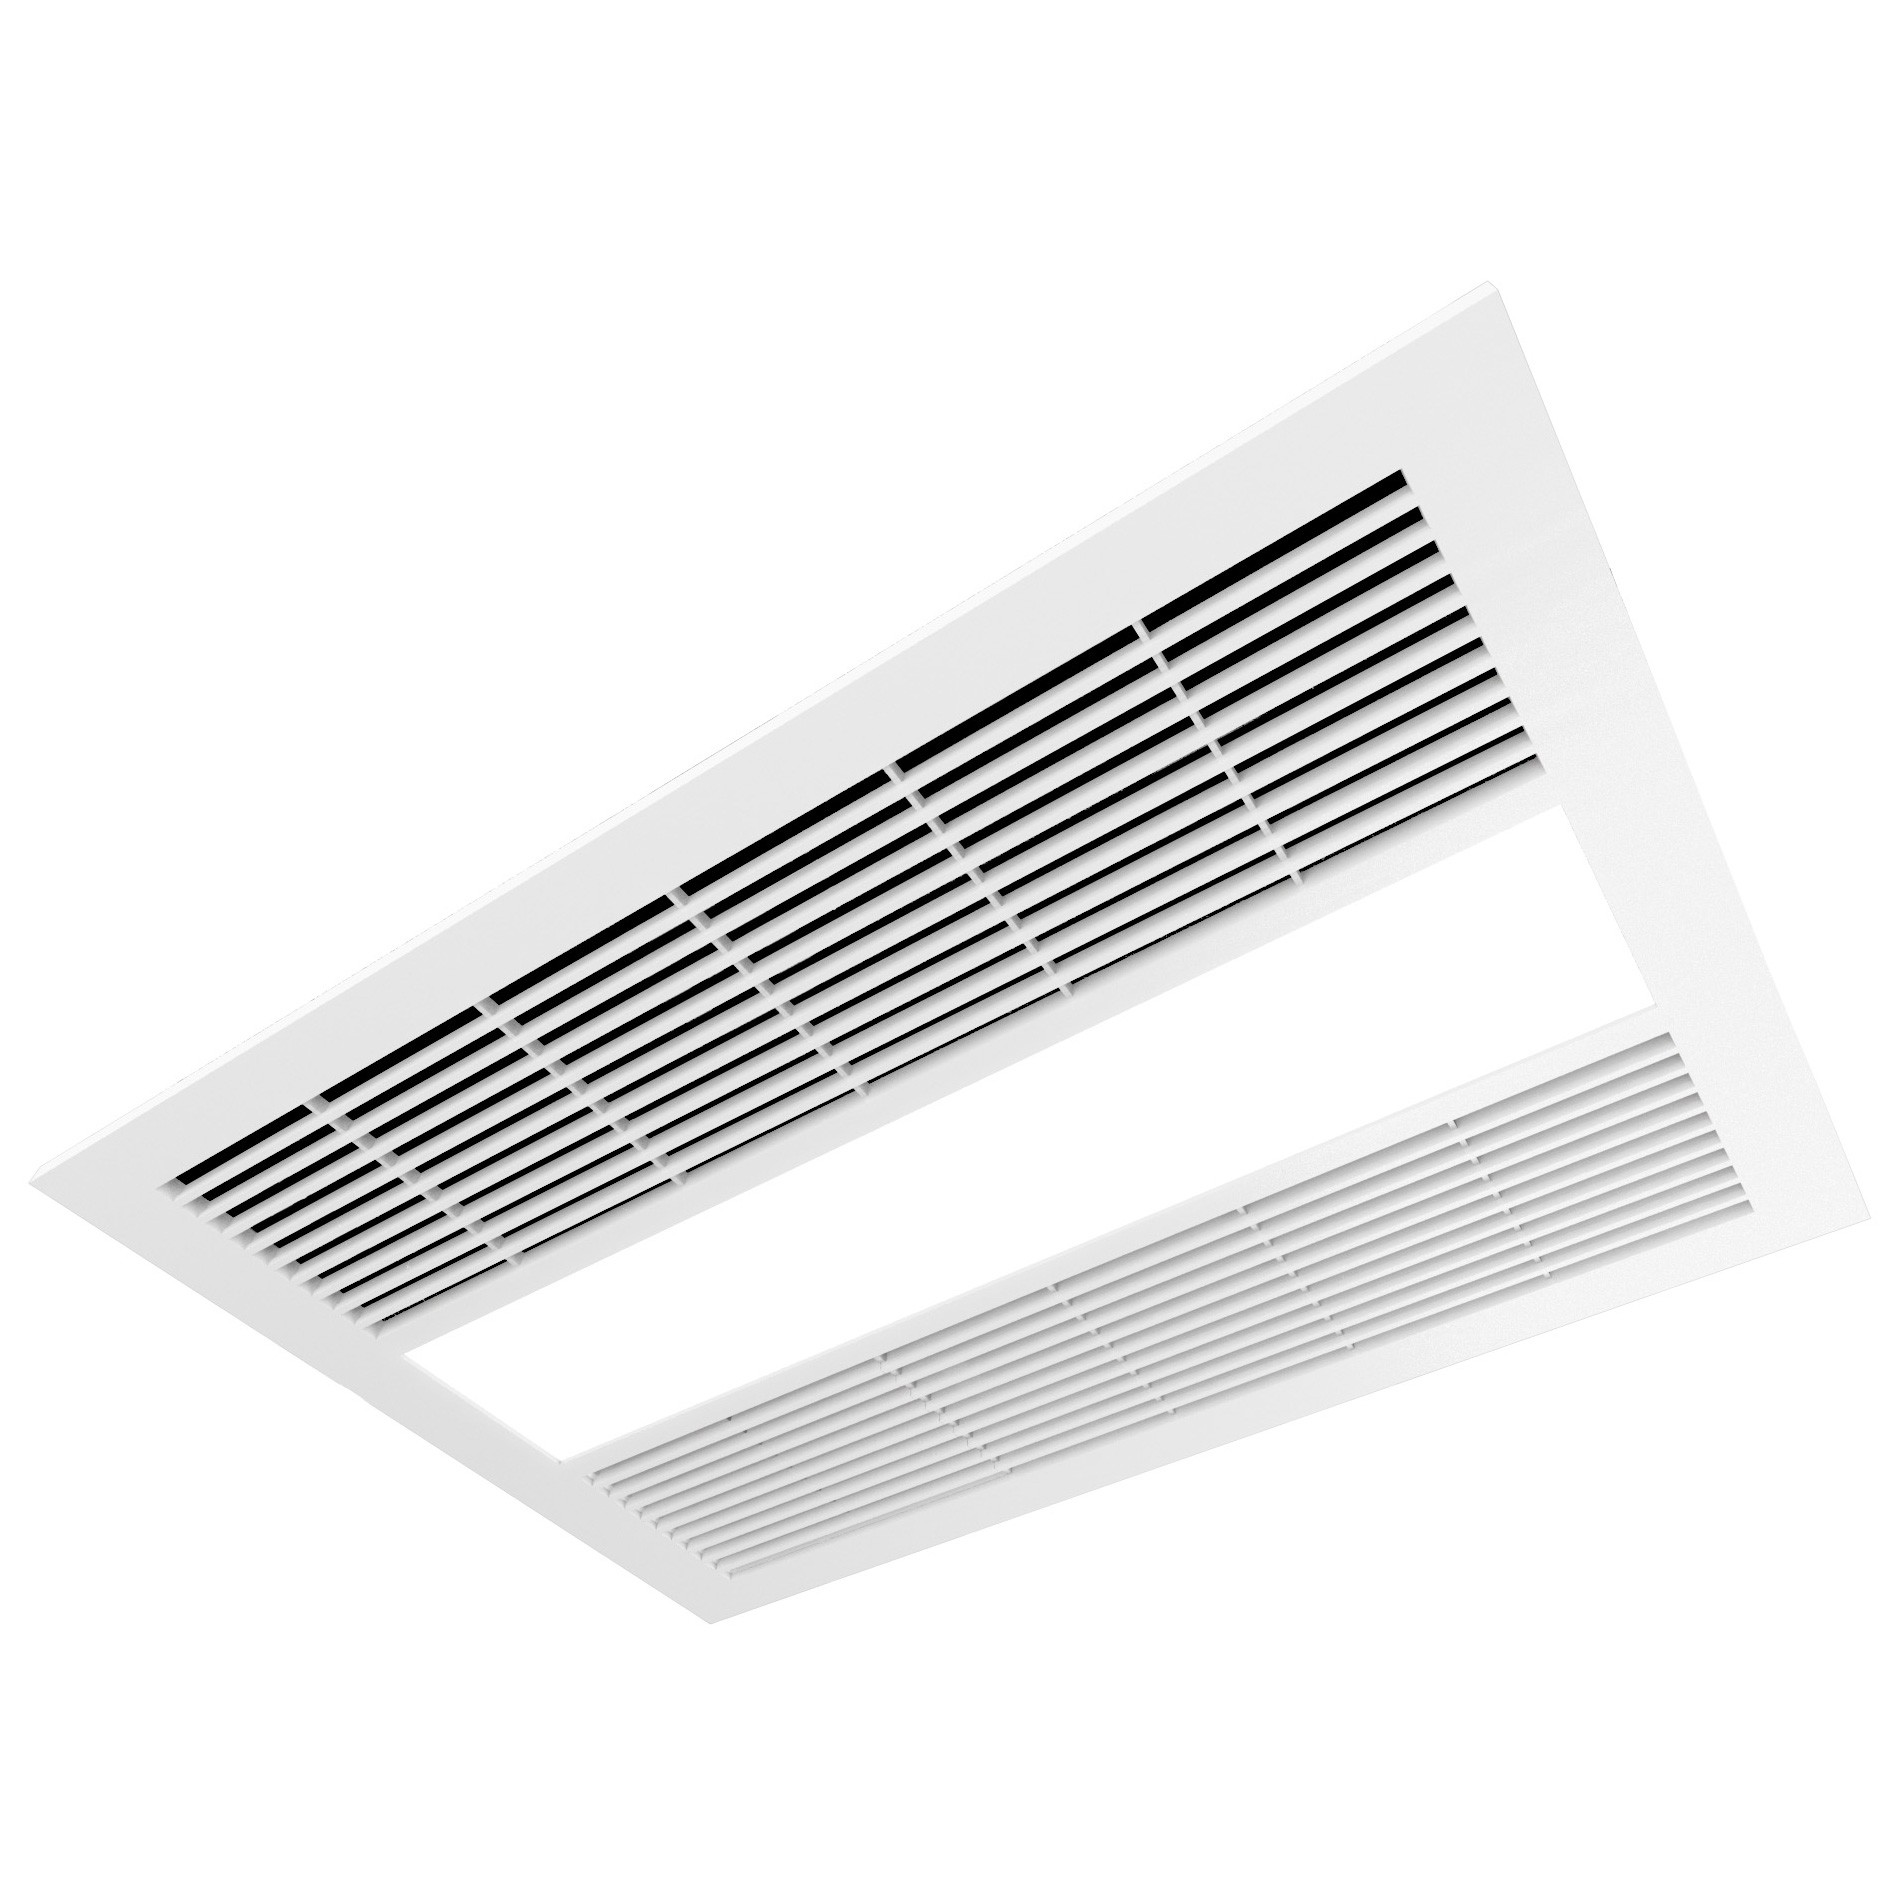 Ventair Sahara Ultra Slim 4-in-1 Fan Bathroom Heater with Exhaust & LED Panel Light, White